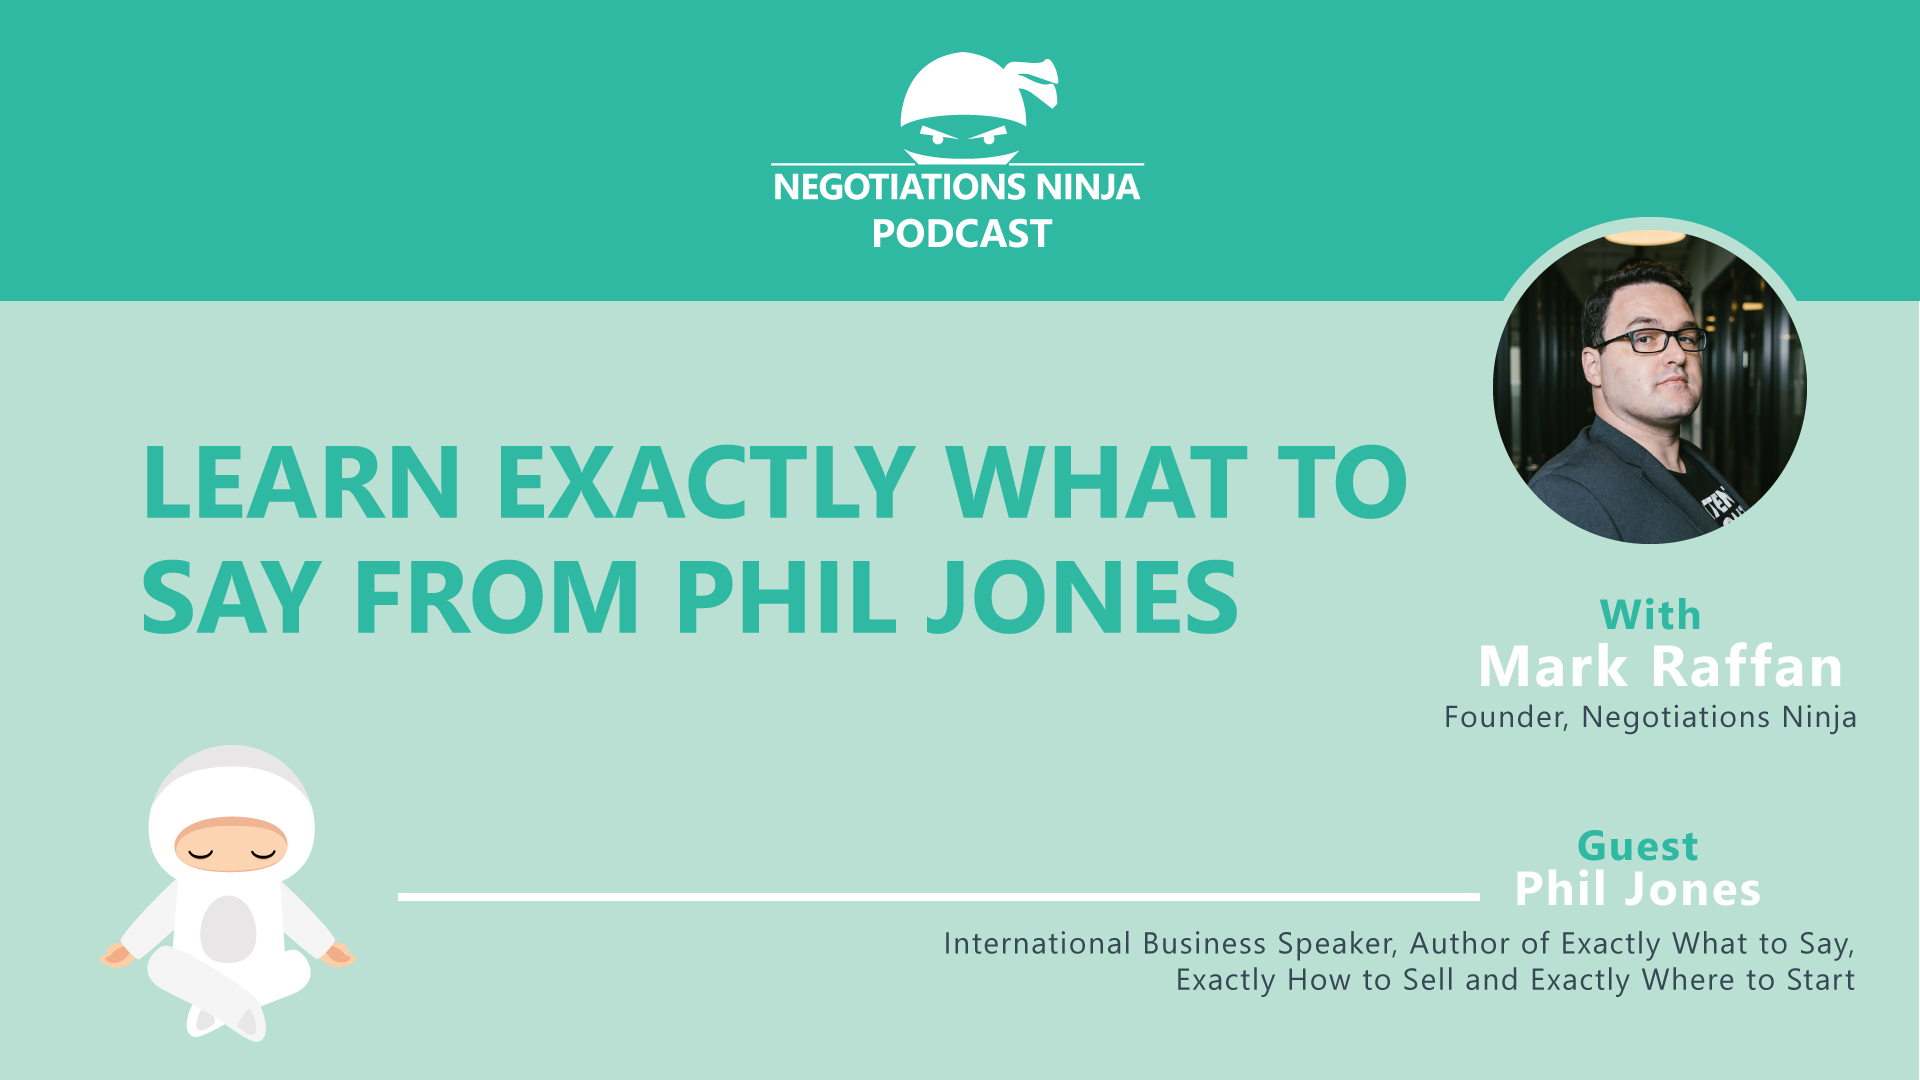 Learn exactly what to say from Phil Jones